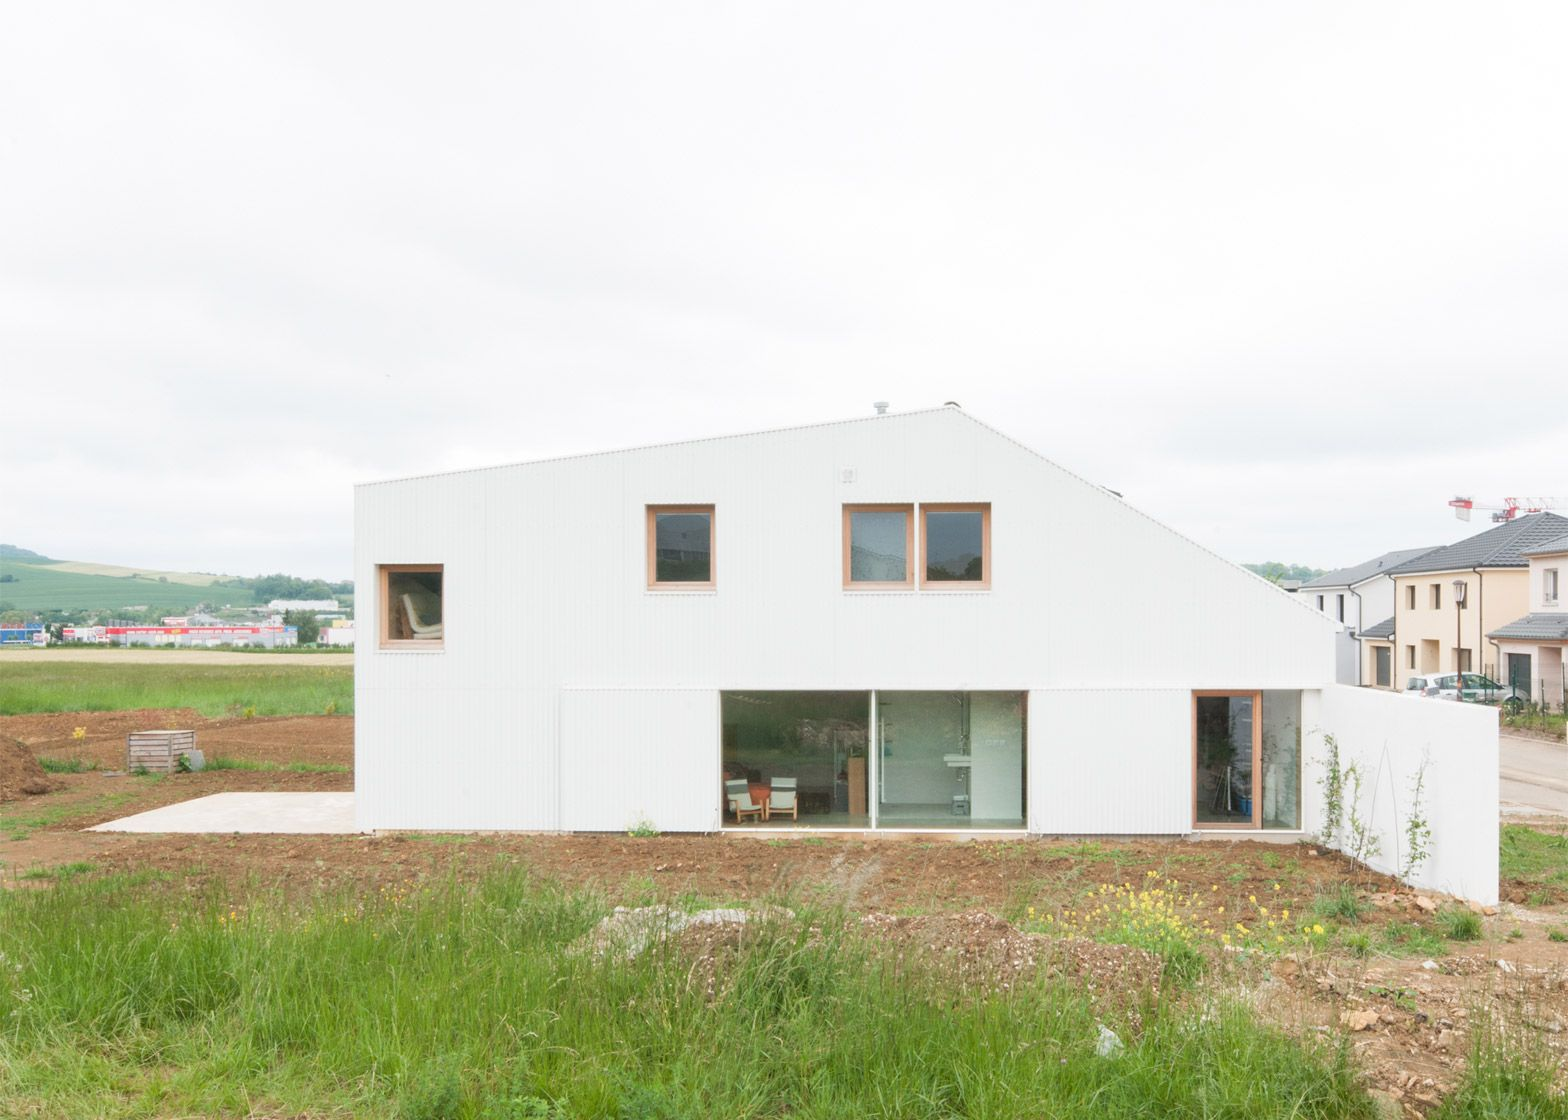 One half of this house by GENS is clad in corrugated plastic and has a chamfered corner